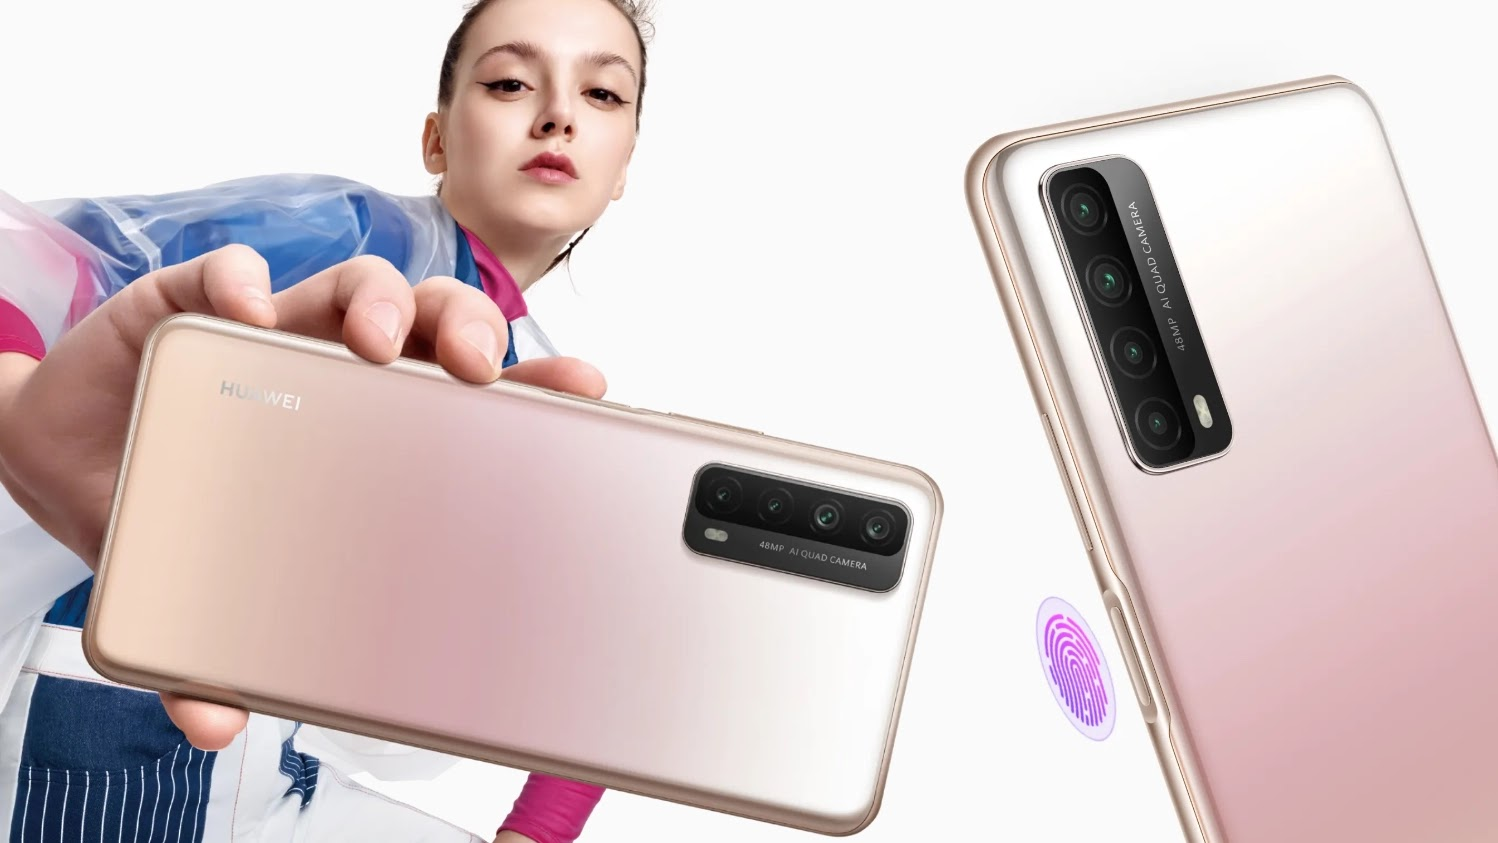 Huawei P Smart 2021 with 5,000mAH Battery, 48MP Qaid Camera Launched: Detailed Specifications, Price